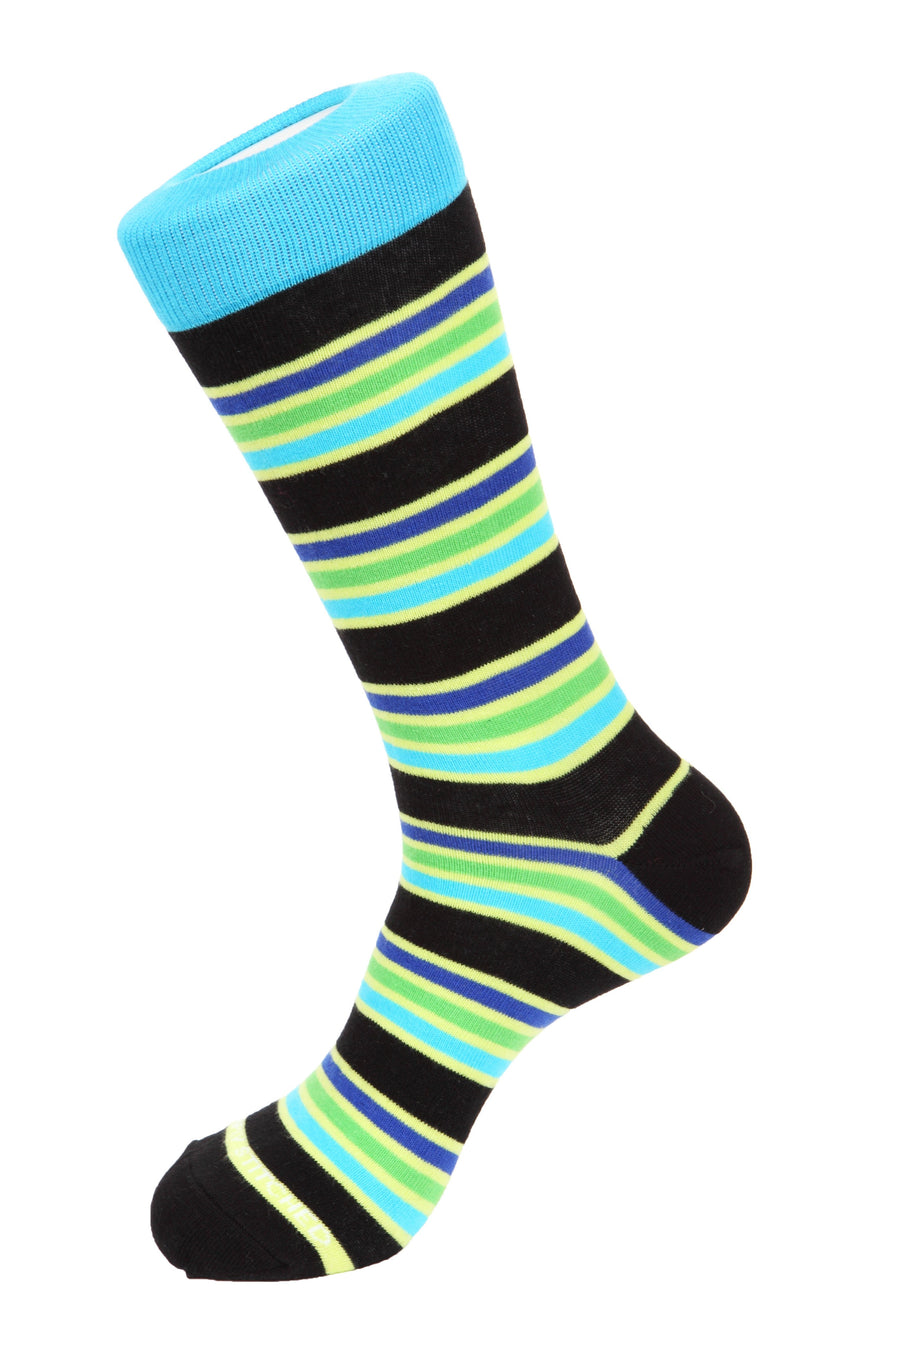 Durango Stripe Socks